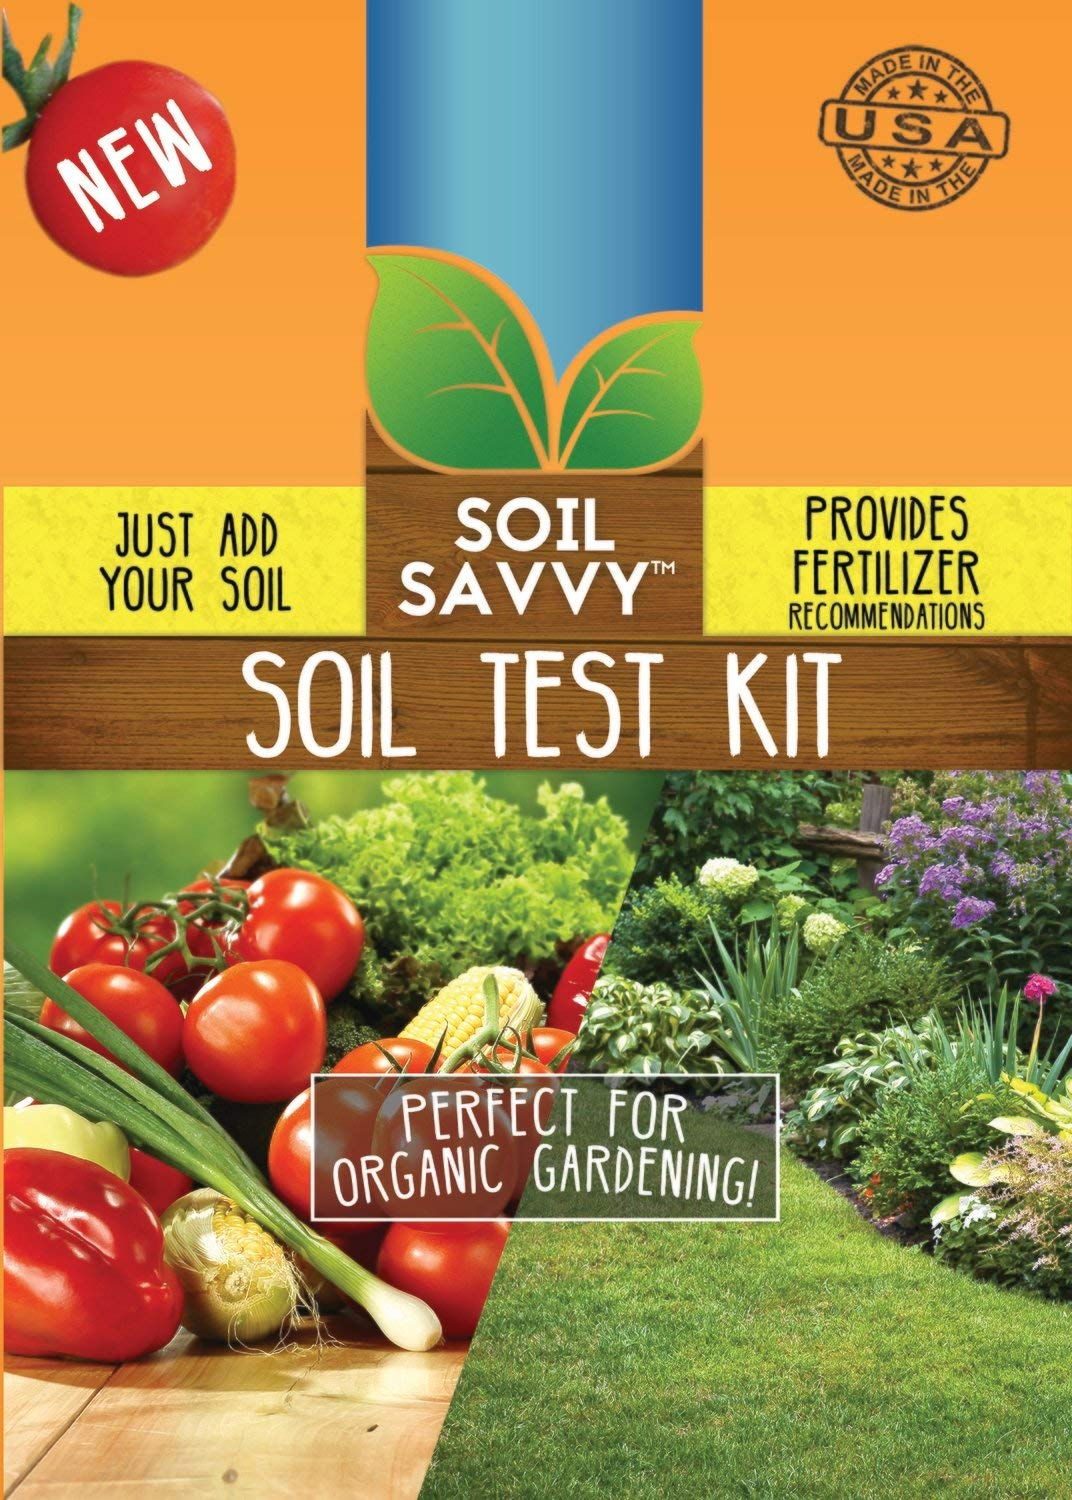 Soil Savvy - Soil Test Kit | Understand What Your Lawn or Garden Soil Needs, Not Sure What Fertilizer to Apply | Analysis Provides Complete Nutrient Analysis & Fertilizer Recommendation On Report by Soil Savvy